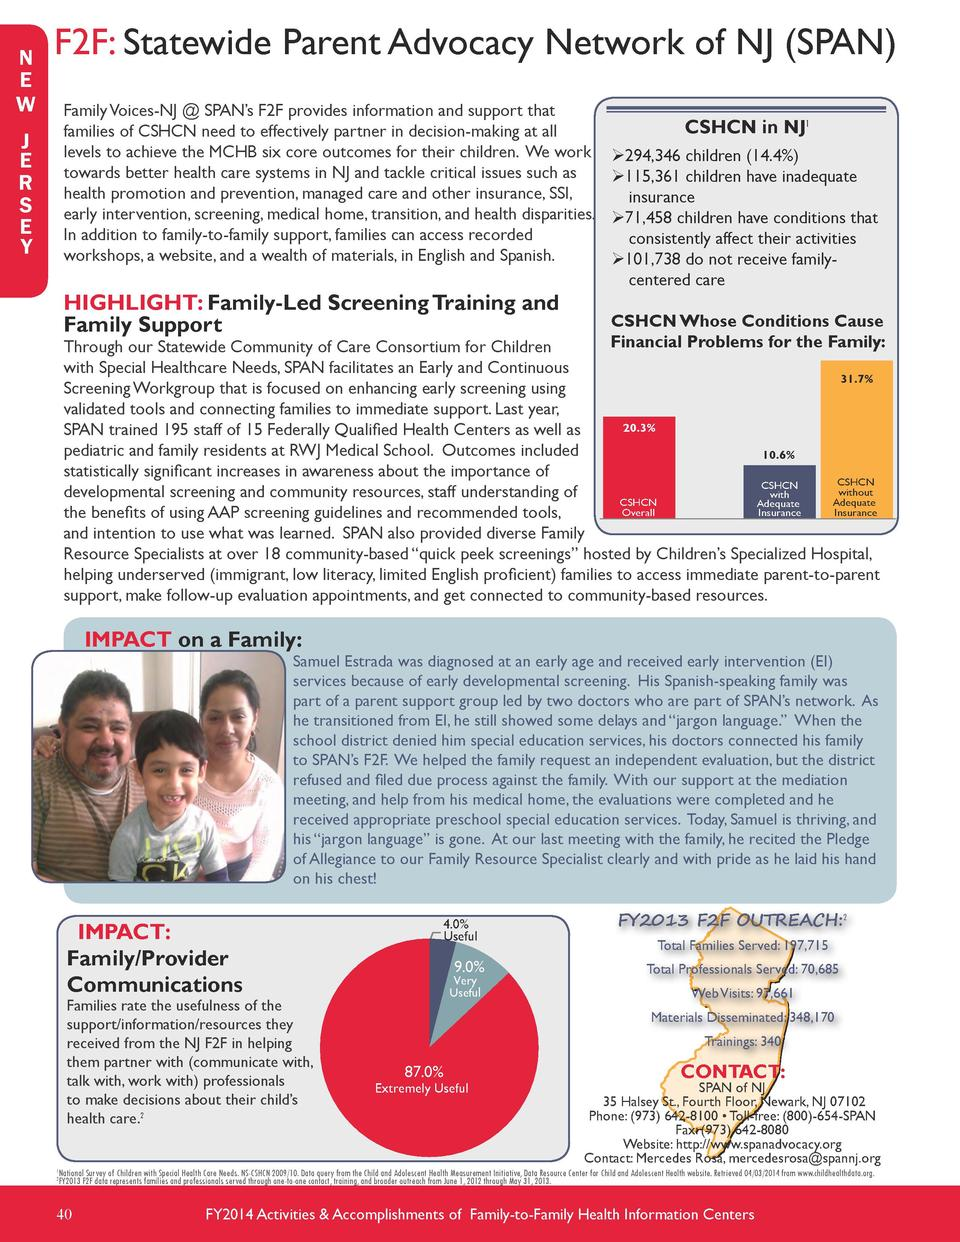 N E W  F2F  Statewide Parent Advocacy Network of NJ  SPAN  Family Voices-NJ   SPAN   s F2F provides information and suppor...